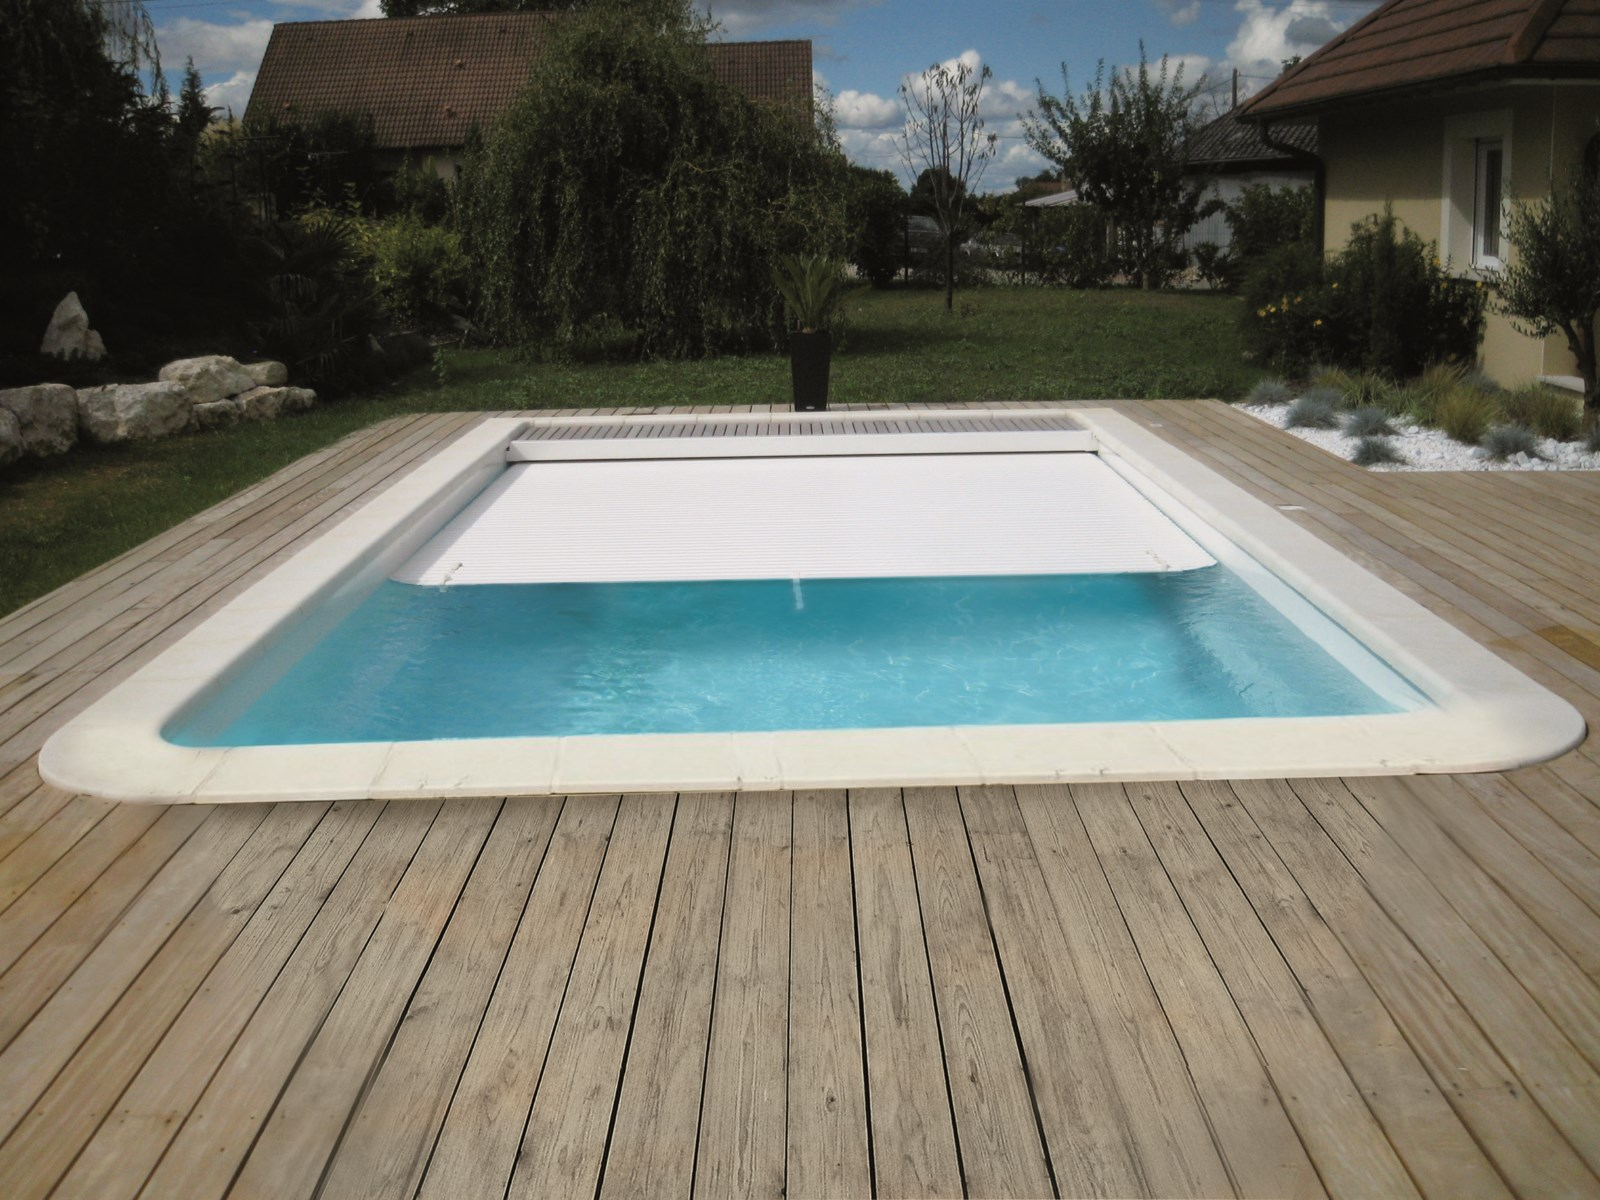 Piscine coque polyester rectangulaire mod le born o avec for Piscine coque volet integre